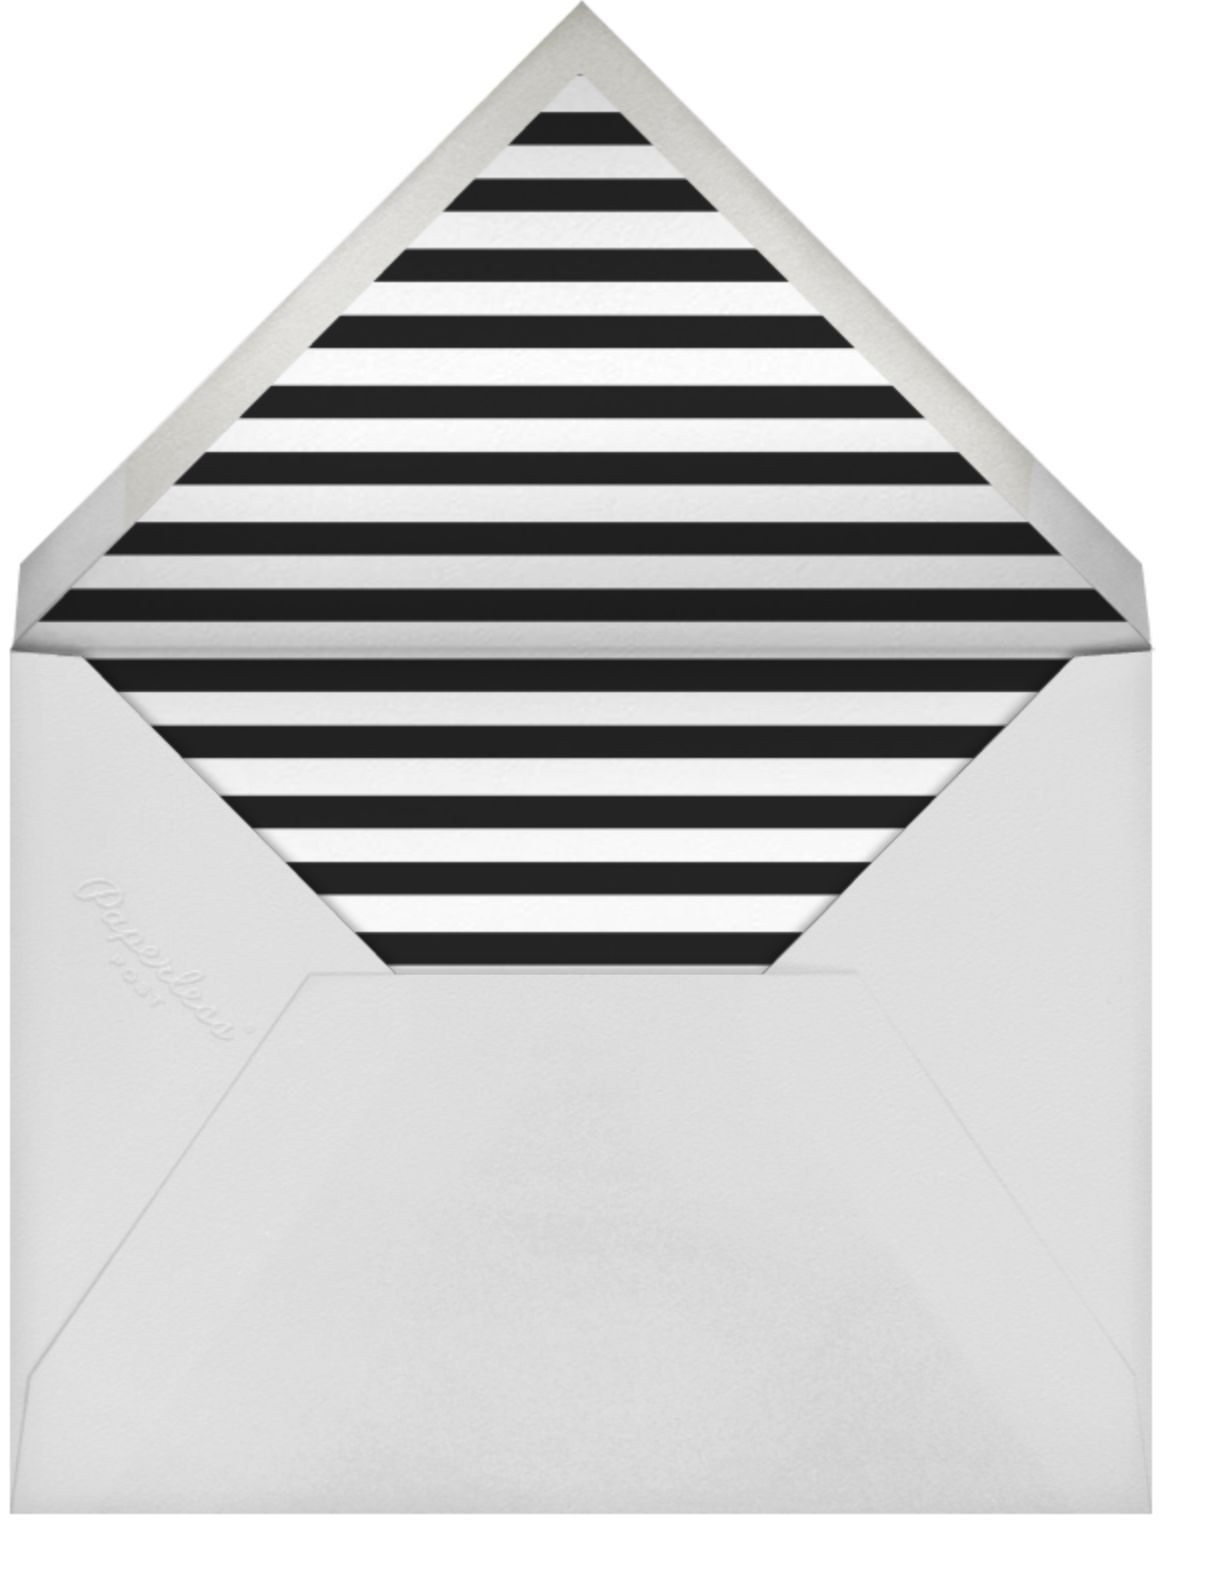 Typographic II (Save the Date) - Gray - kate spade new york - Party save the dates - envelope back